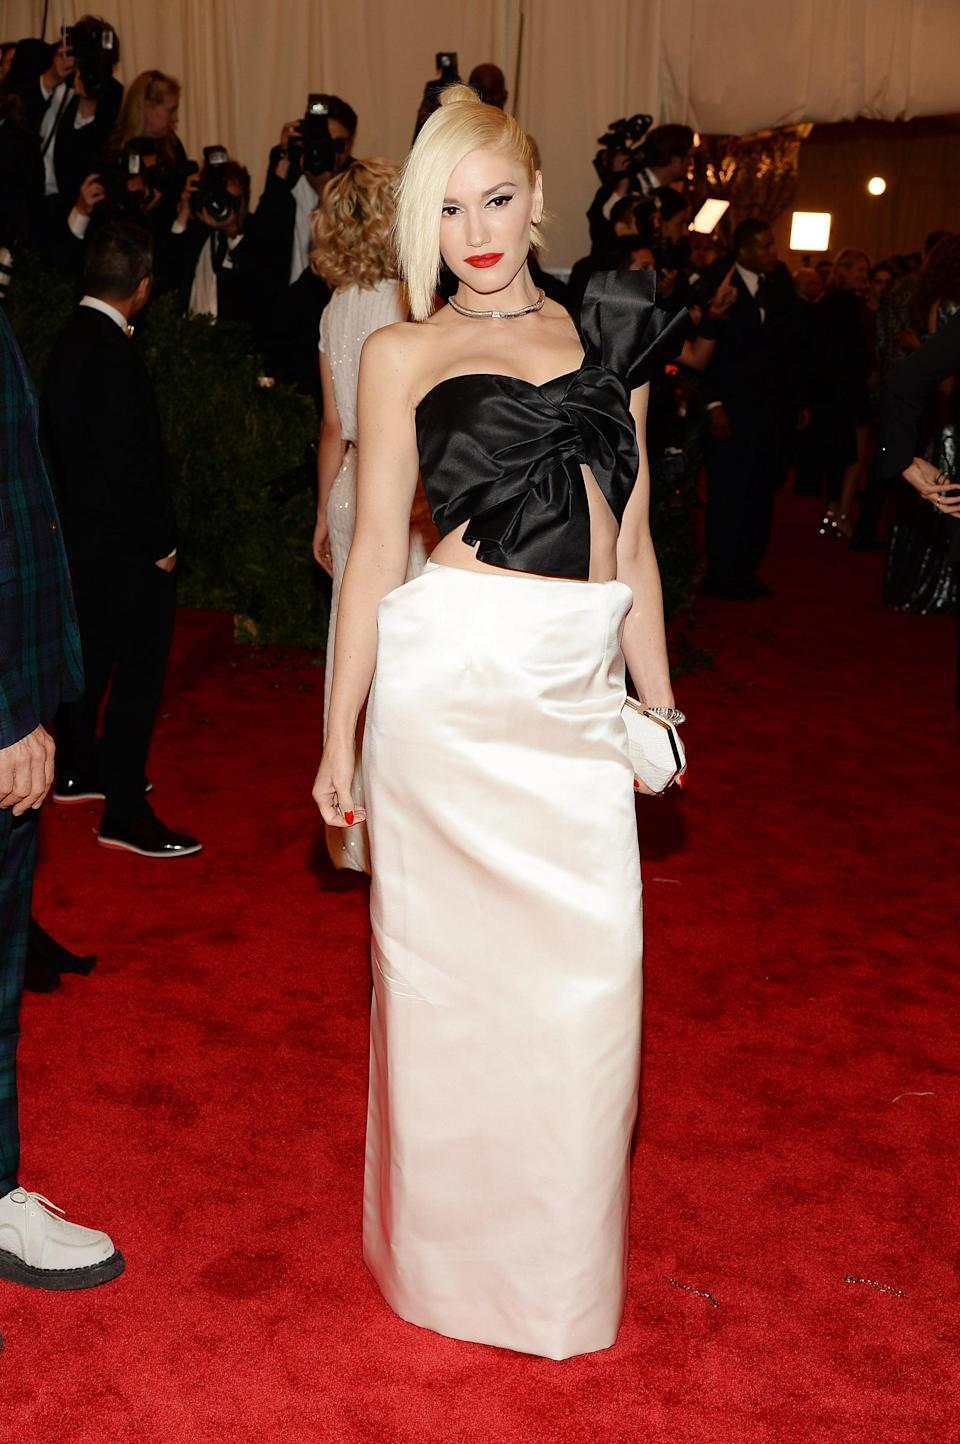 <p>Attending the 2013 Met Gala in a Moschino gown.</p>